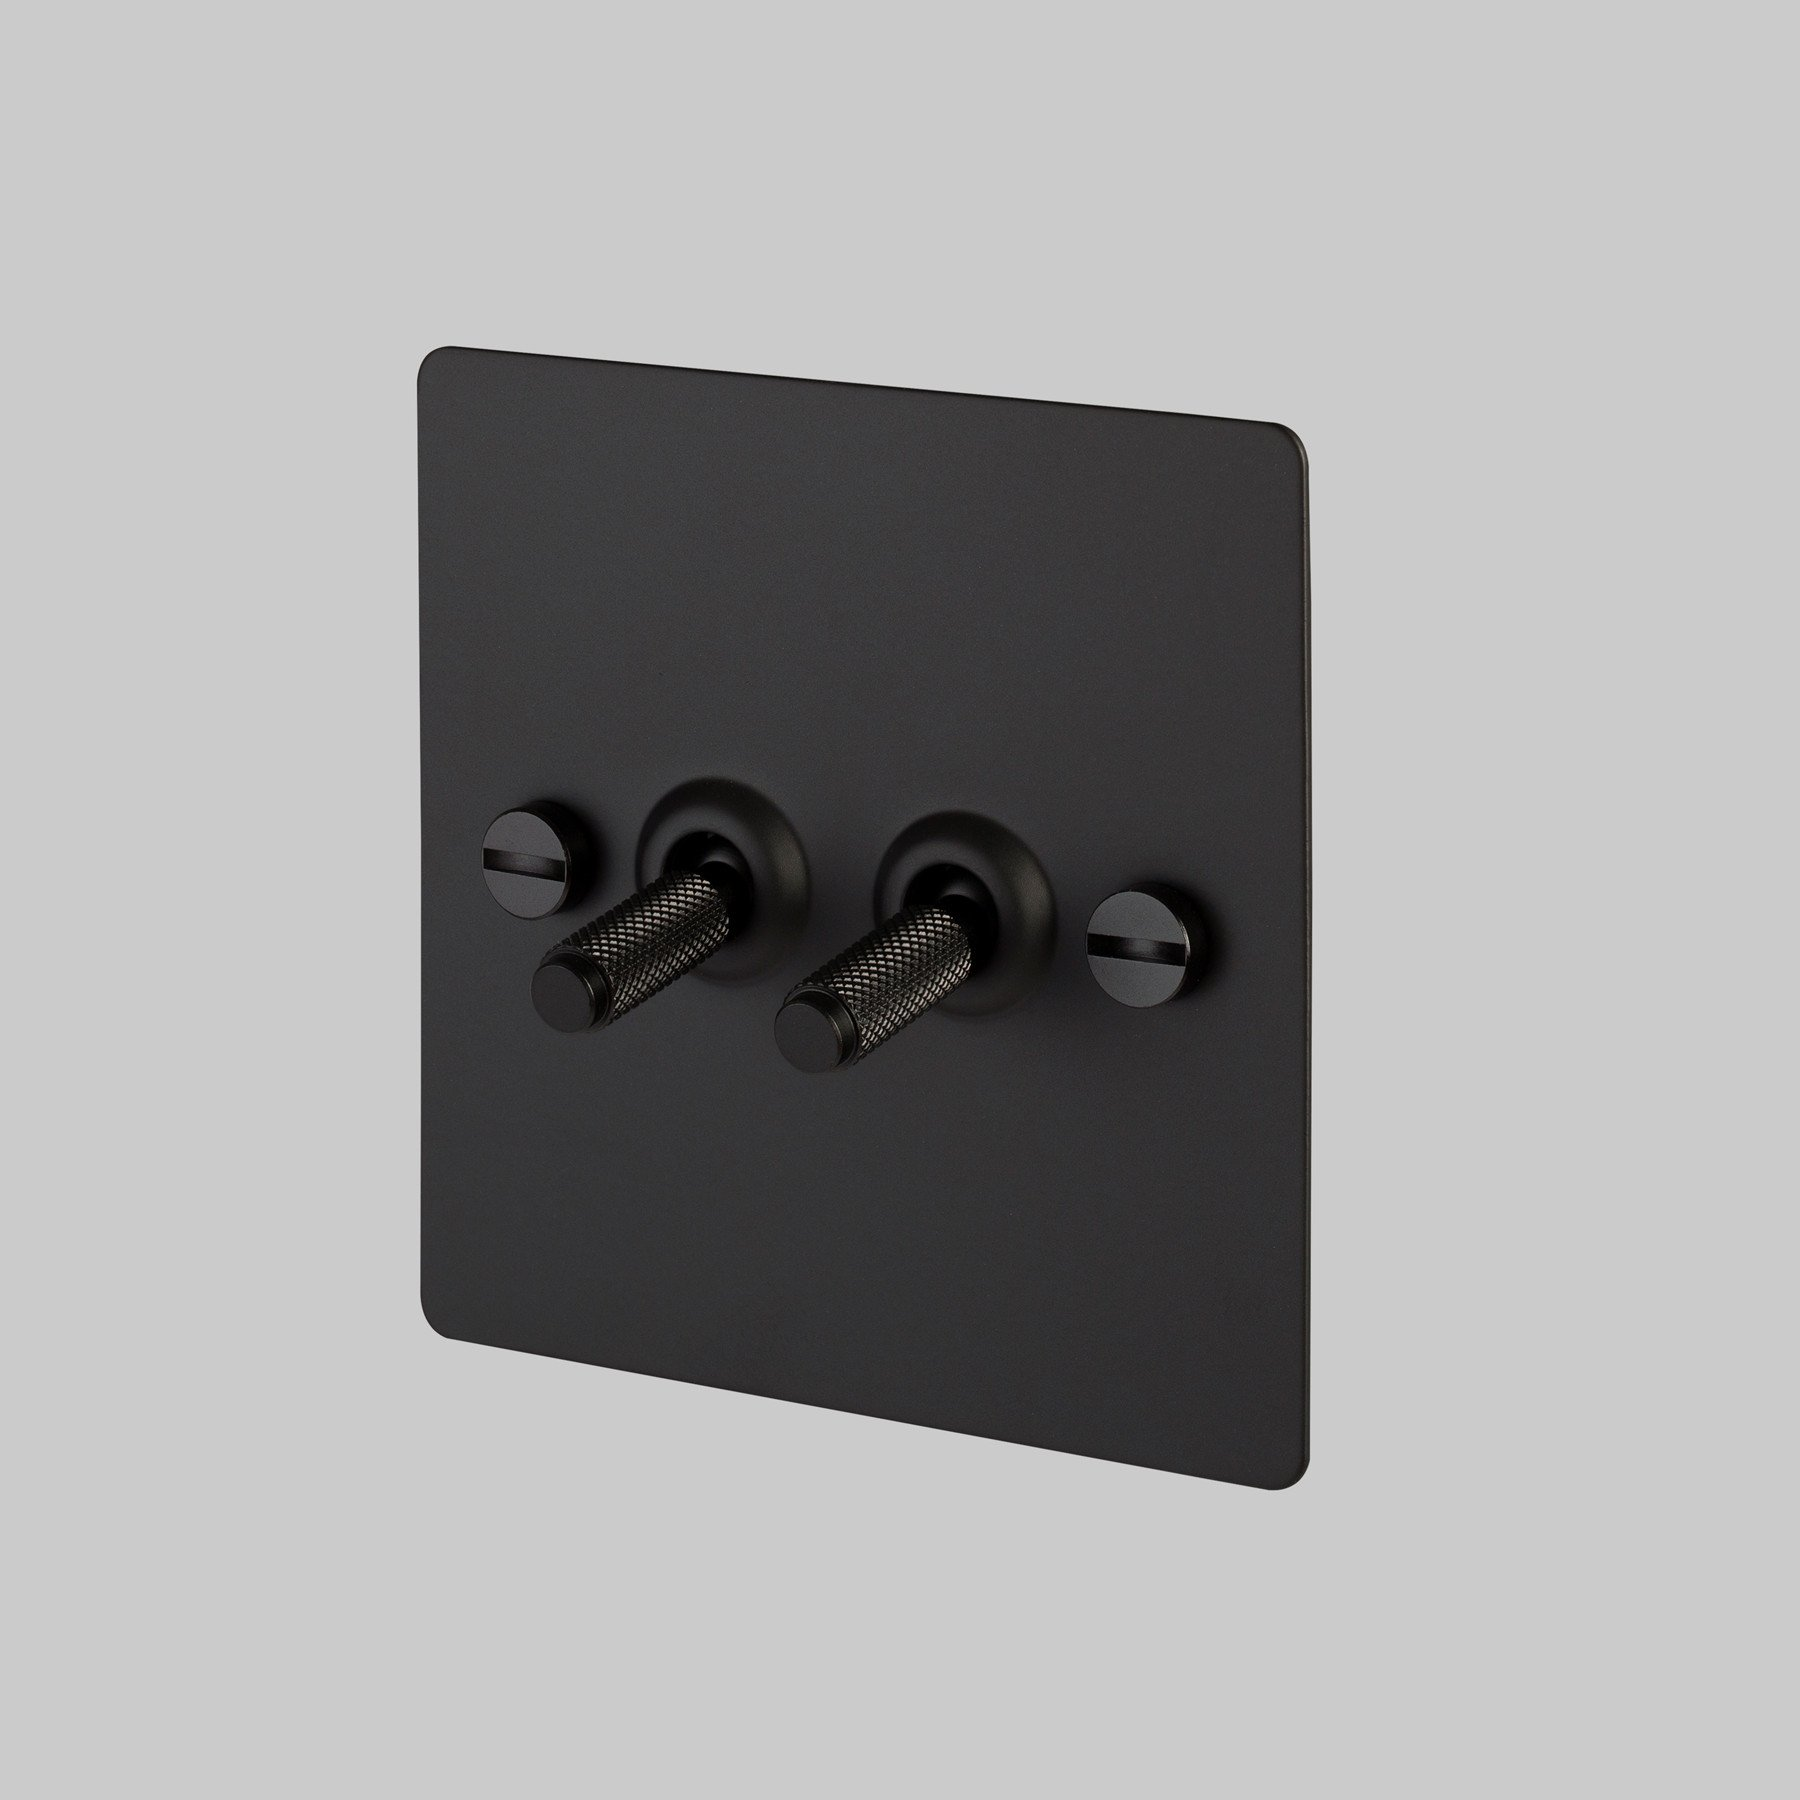 2G TOGGLE SWITCH / BLACK